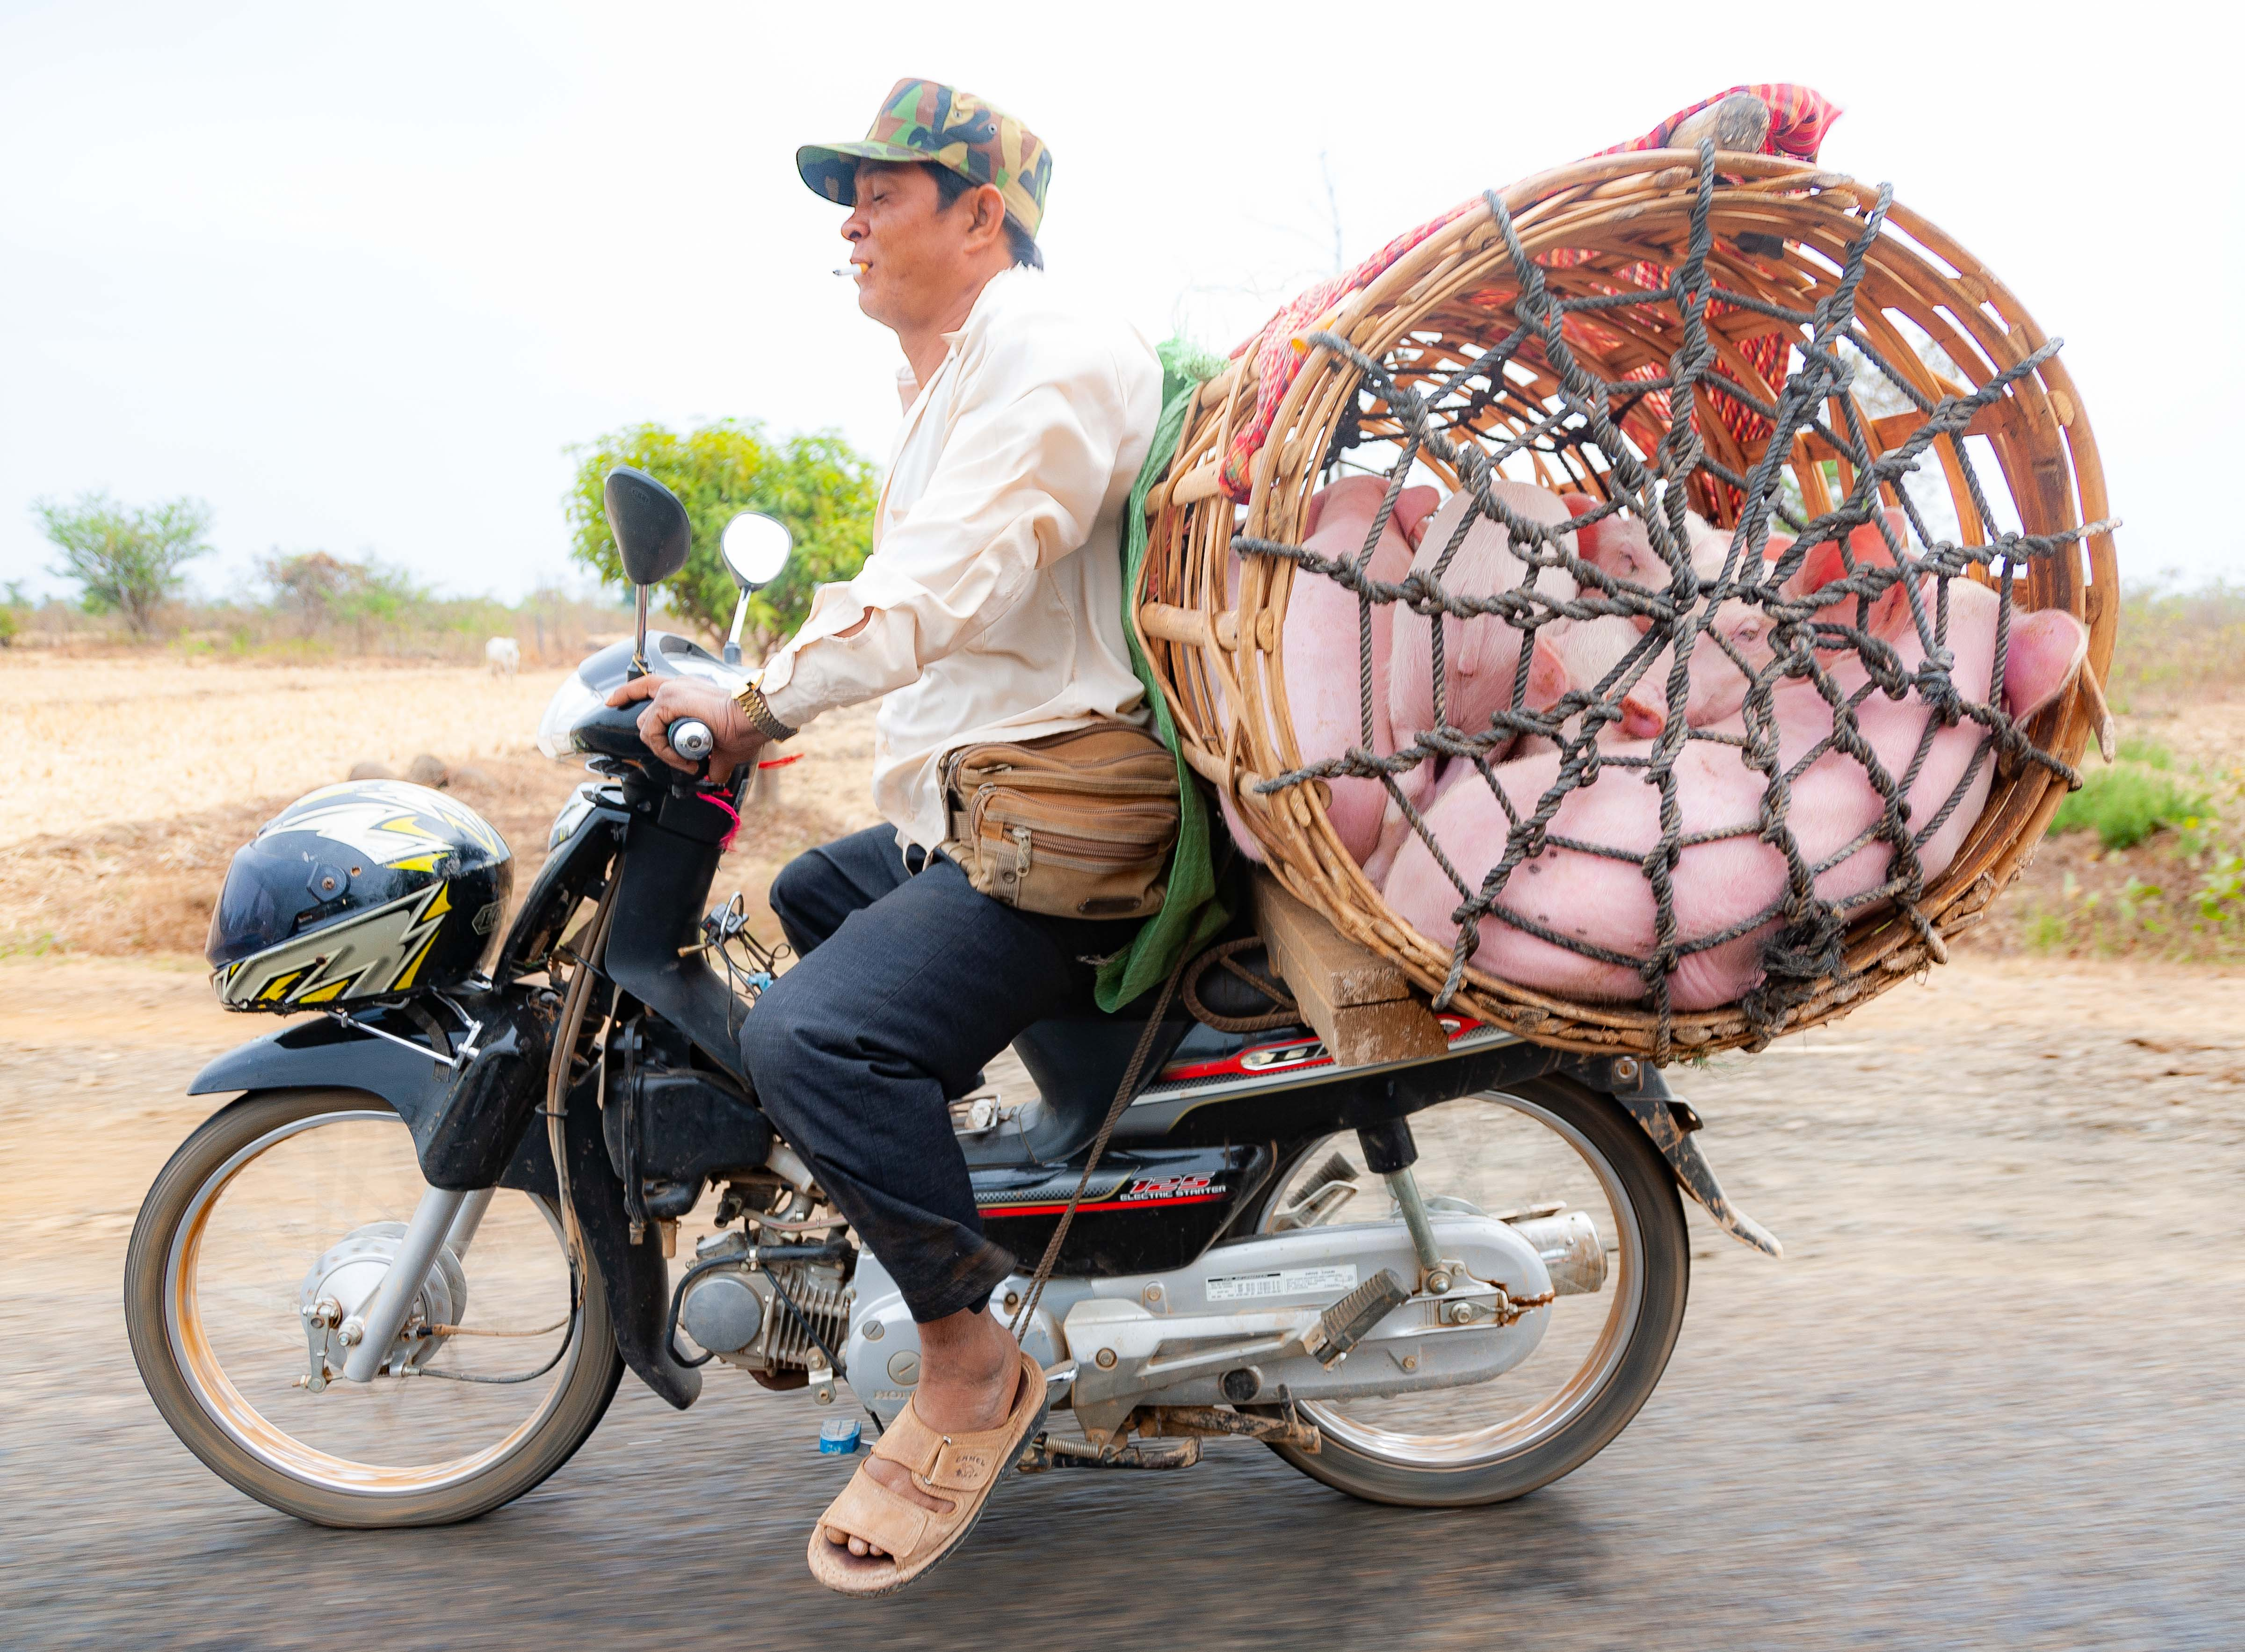 Cambodia, Kampong Chaam Prov, Pig Basket, 2010, IMG 5398